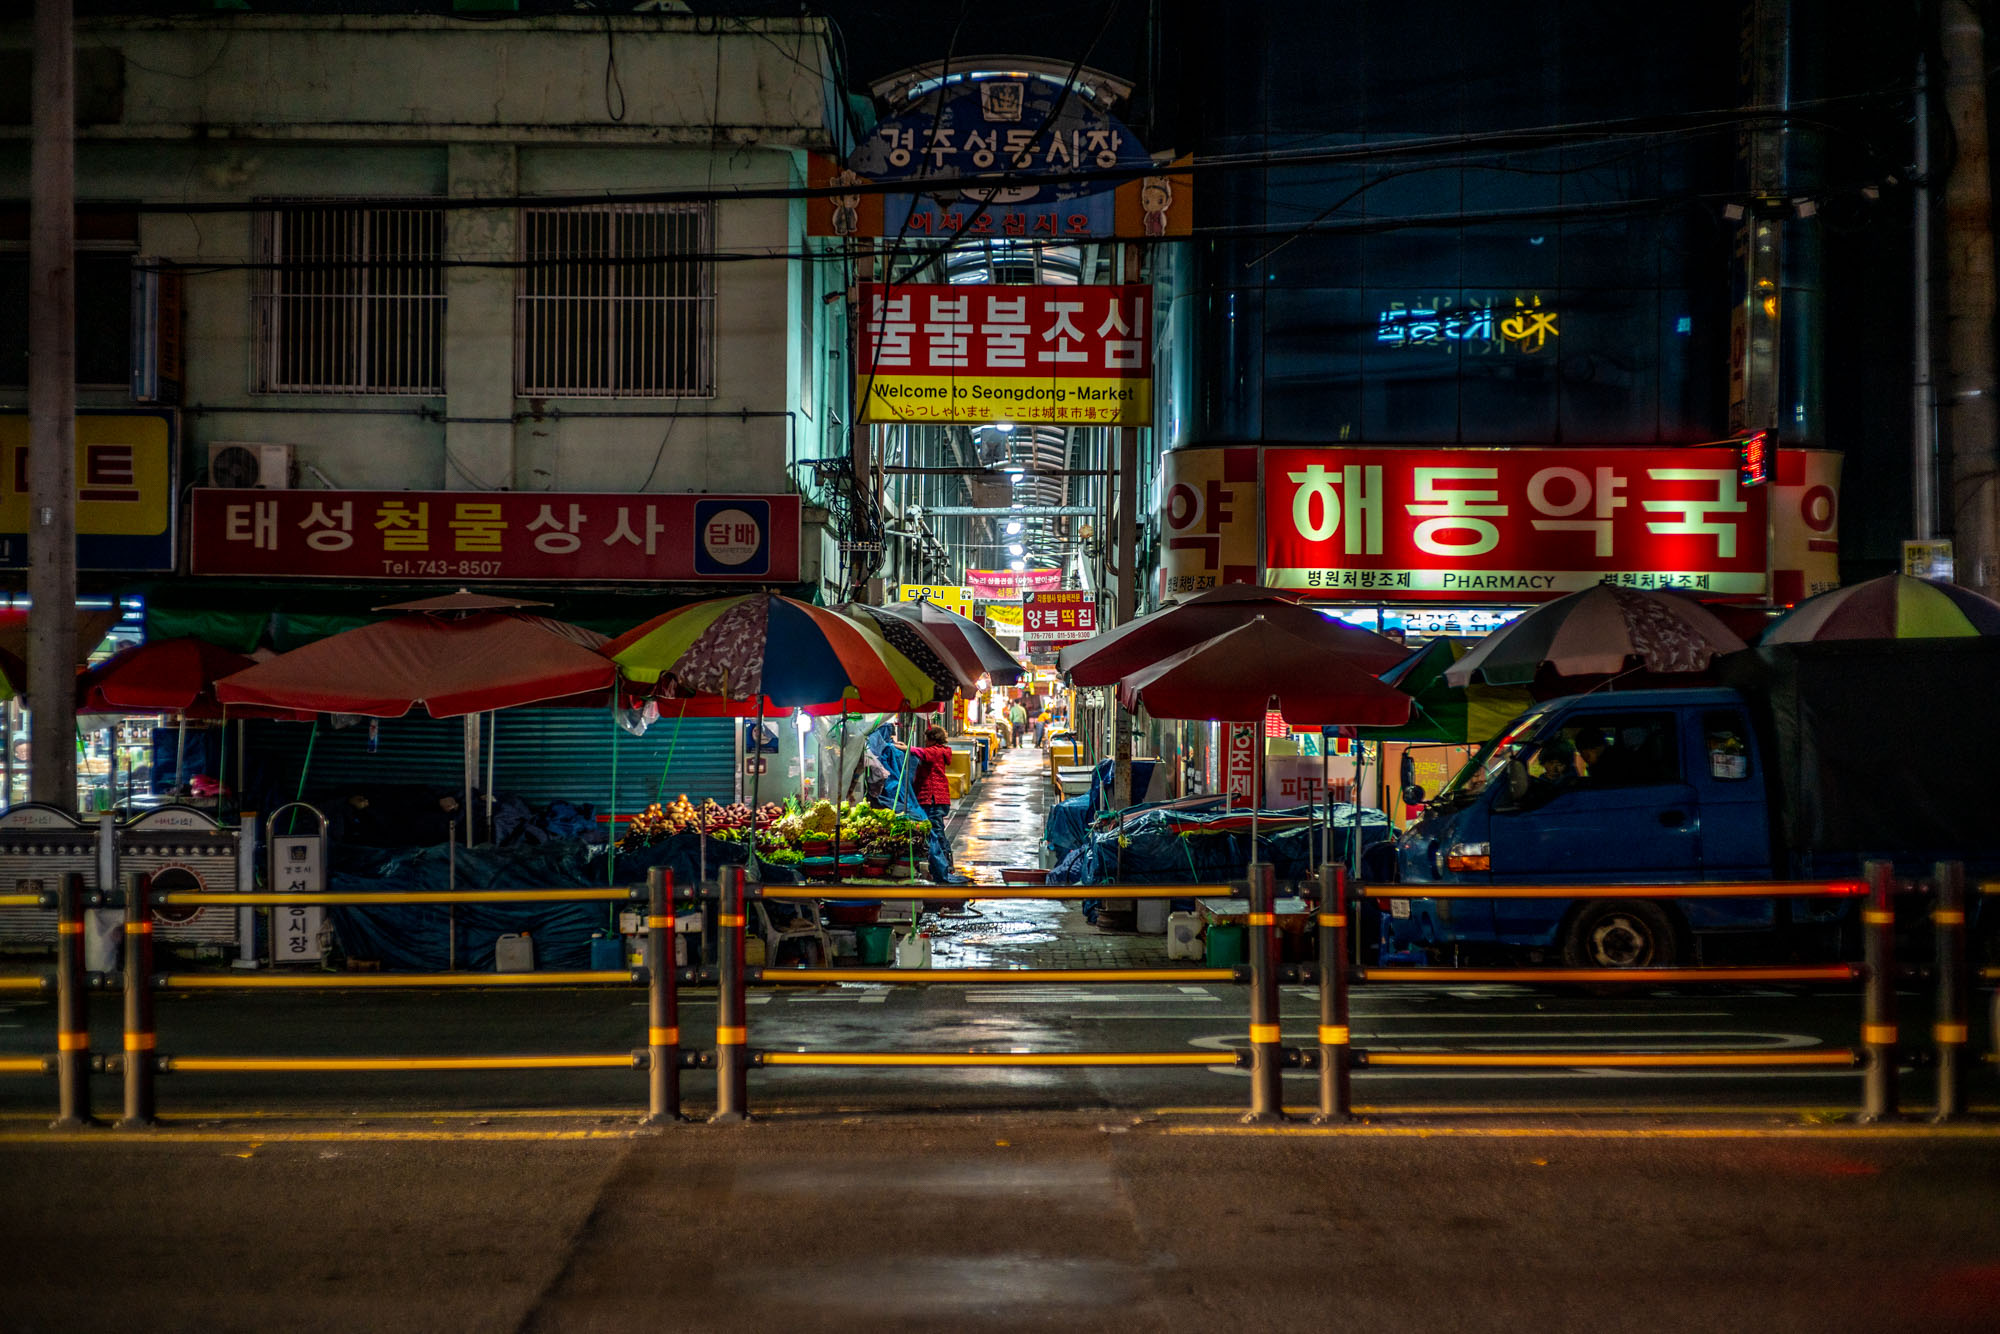 Just like any Korean town, this covered market is part of Gyeongju's central district. I learned a lot about the country visiting these markets, but mostly about Korean ideas of utilization of public space. Perhaps, one of these days, I'm going to post more about it.